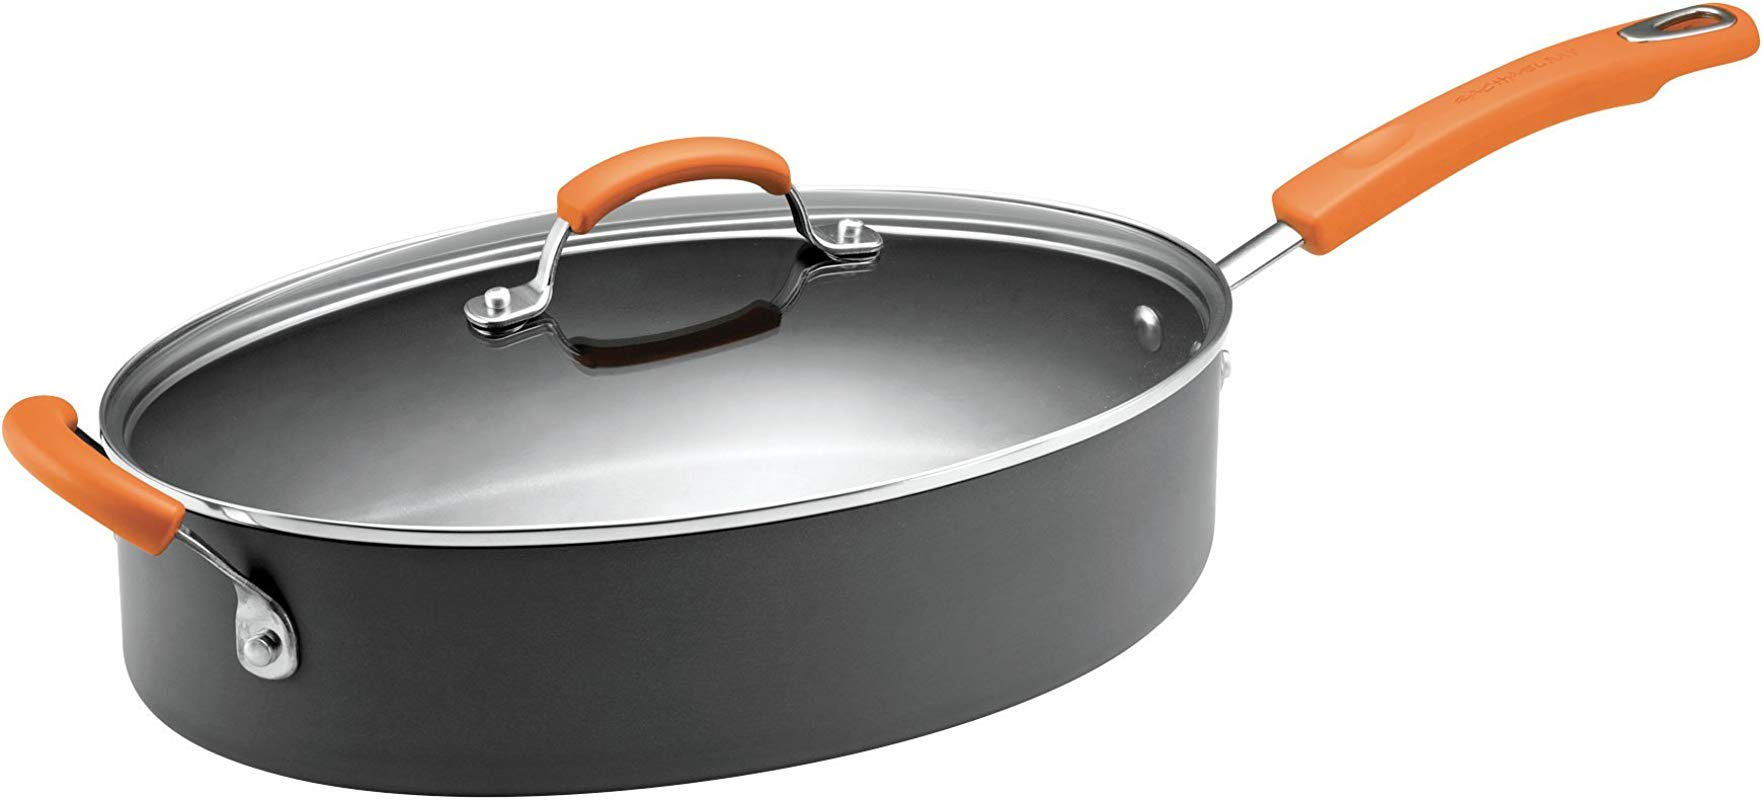 Rachael Ray Hard Anodized Nonstick 5 Quart Covered Oval Saut Pan Gray With Orange Helper Handles